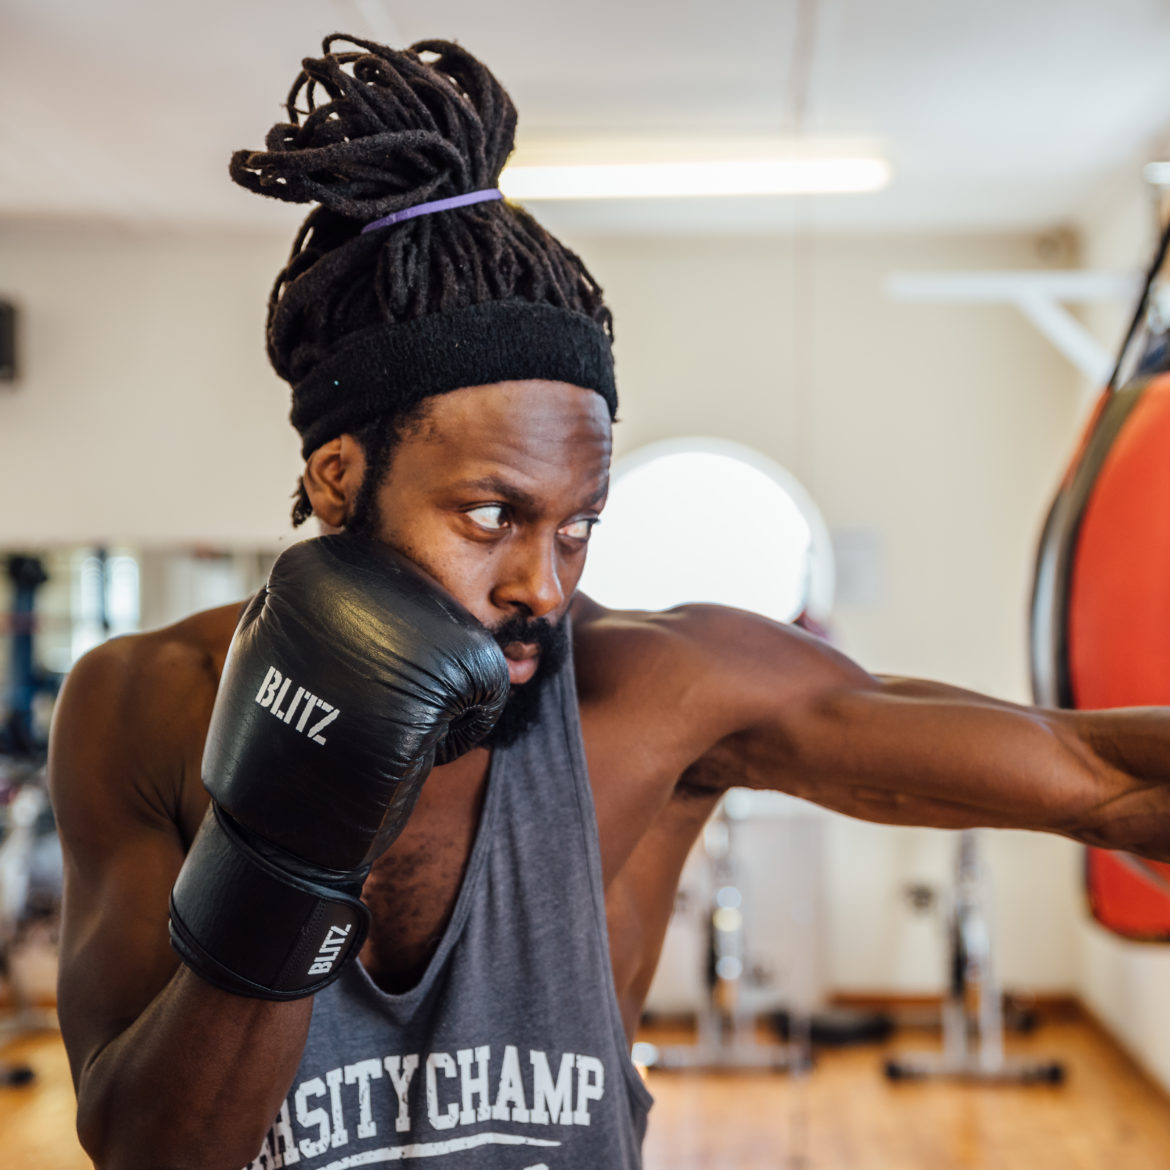 Throwing a punch with a cause with Mojo Boxing & Fitness